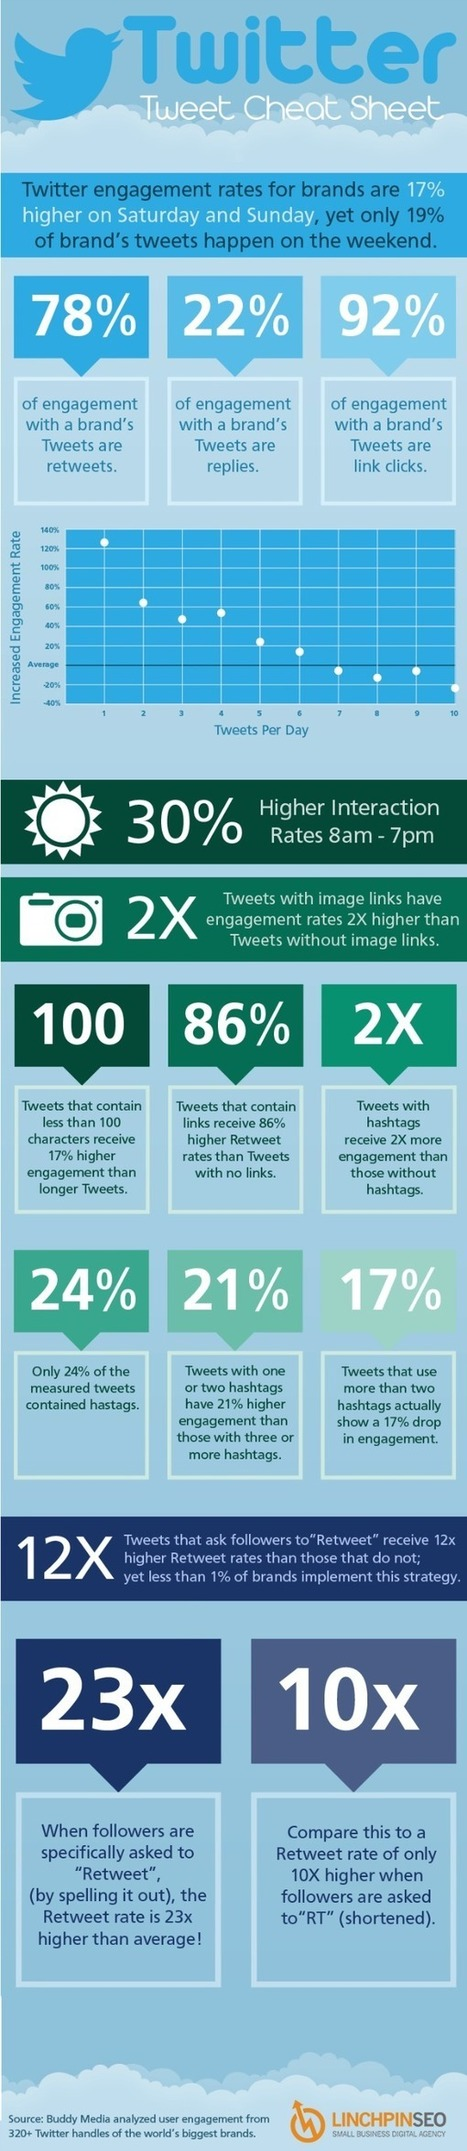 Twitter tweet cheat sheet [infographic] | Reading - Web and Social Media | Scoop.it